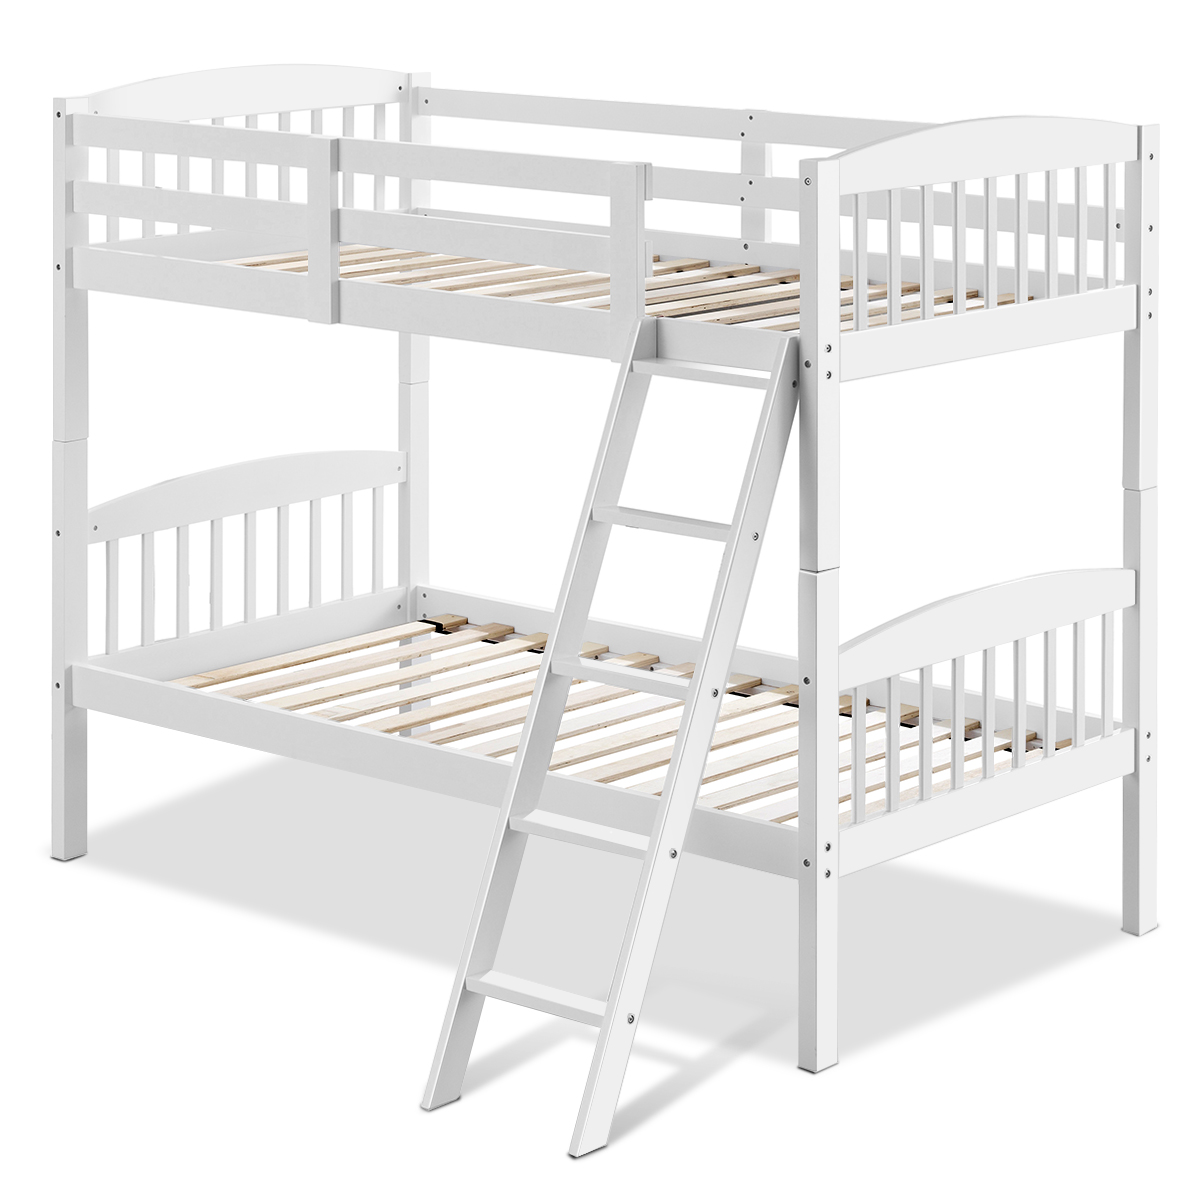 Hardwood Twin Bunk Beds Rubber Wood 2 Individual Kid Bed Ladder Guardrail White